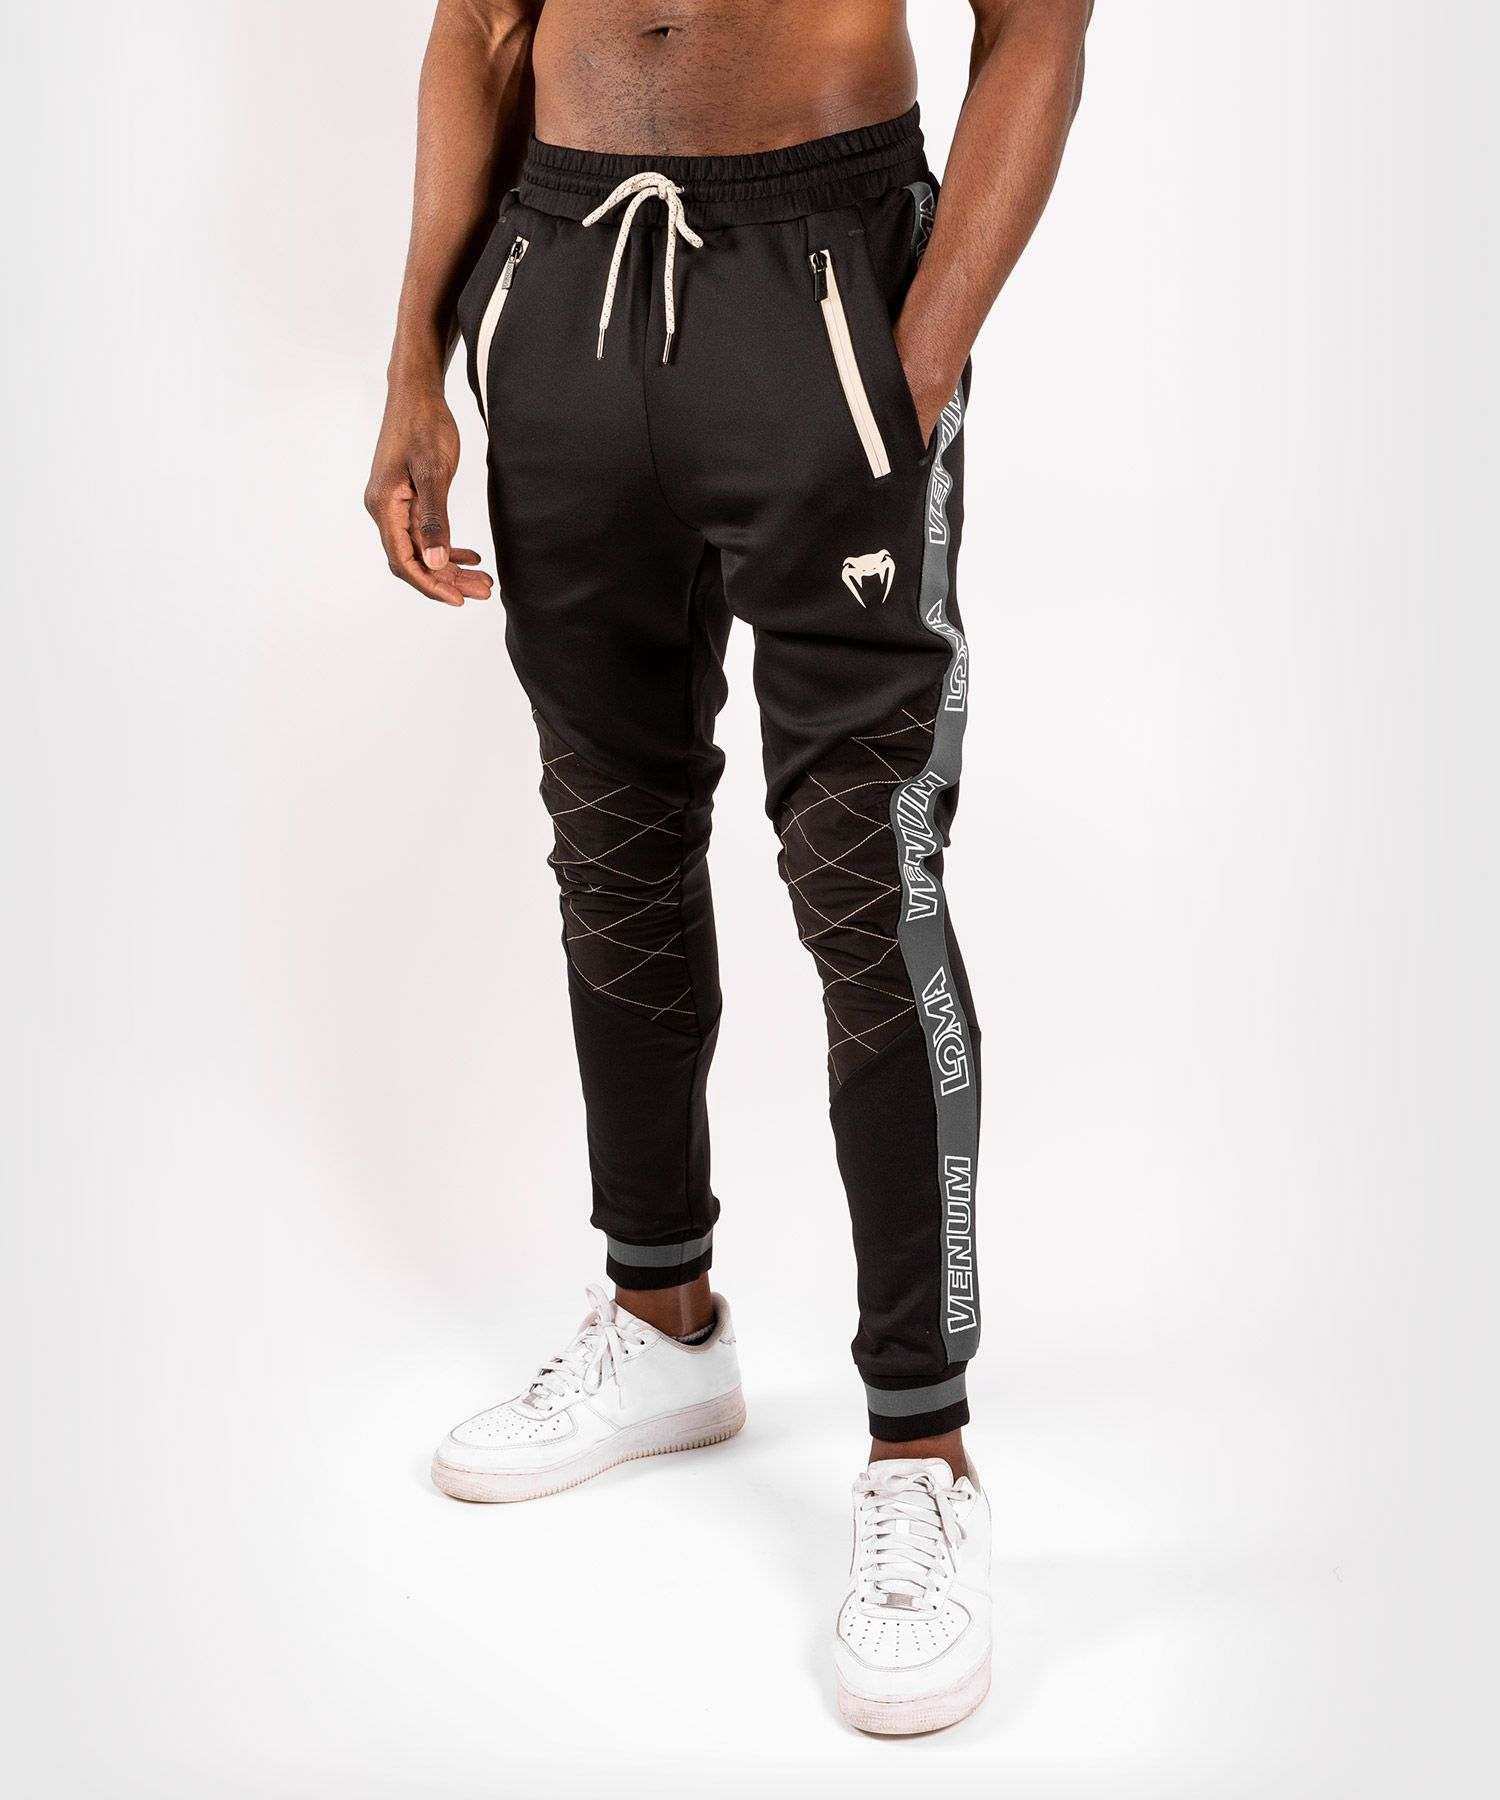 Pantalones de jogging Venum Arrow Loma Signature Collection - Negro/Blanco